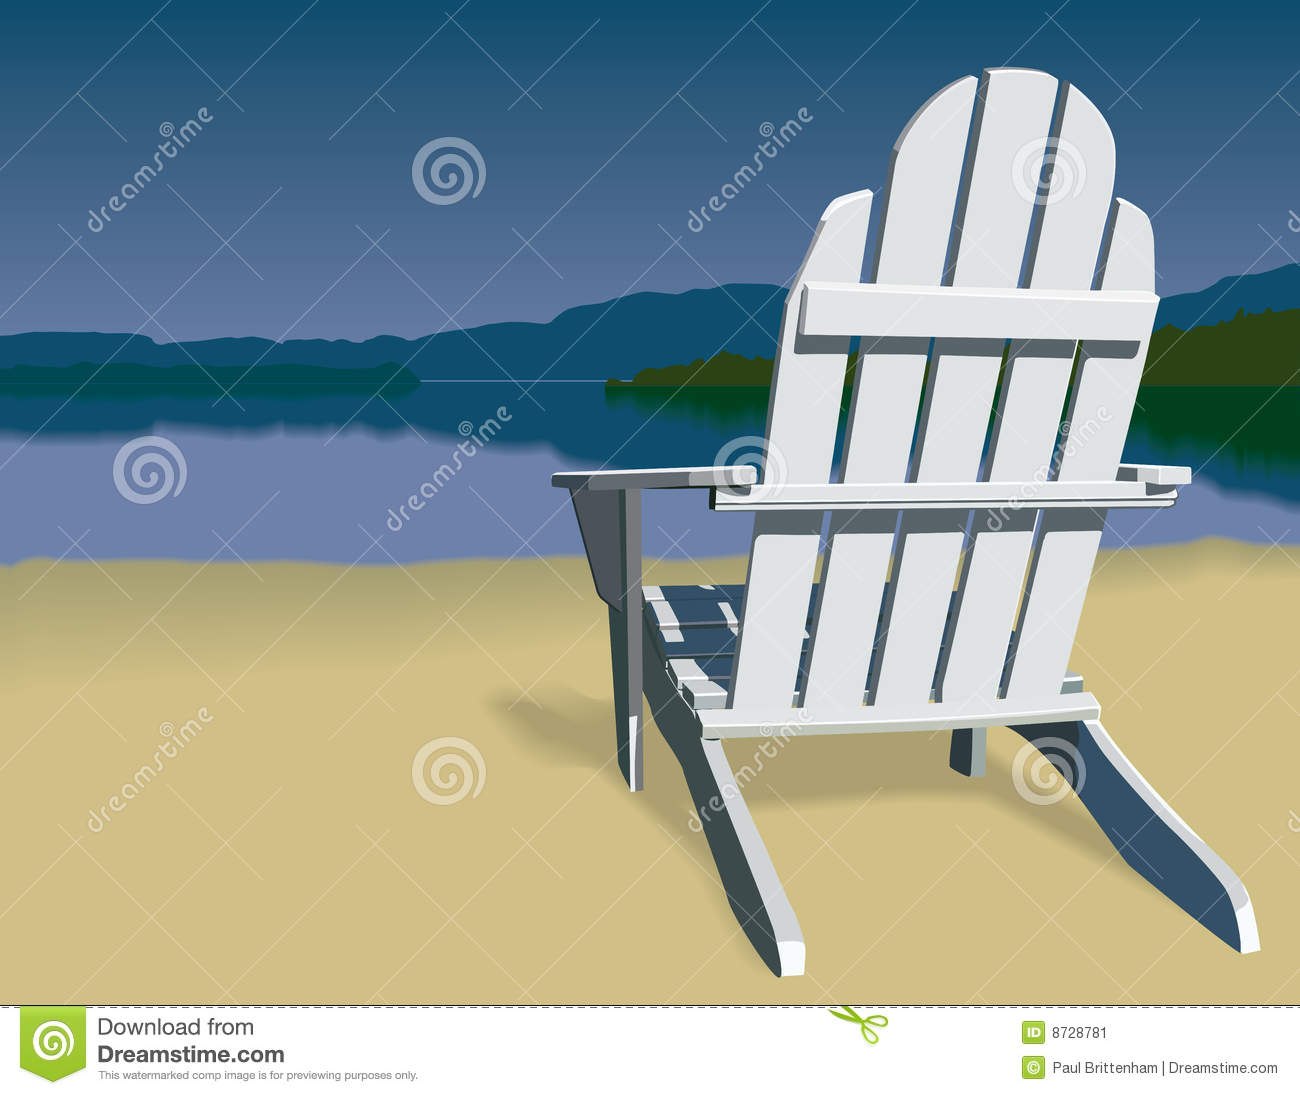 Adirondack chair silhouette Muskoka Chair Adirondack Chair Scene Adirondack Chair On Beach That Has View Of Mountain Faceafaceorg Adirondack Chair Stock Illustrations 105 Adirondack Chair Stock